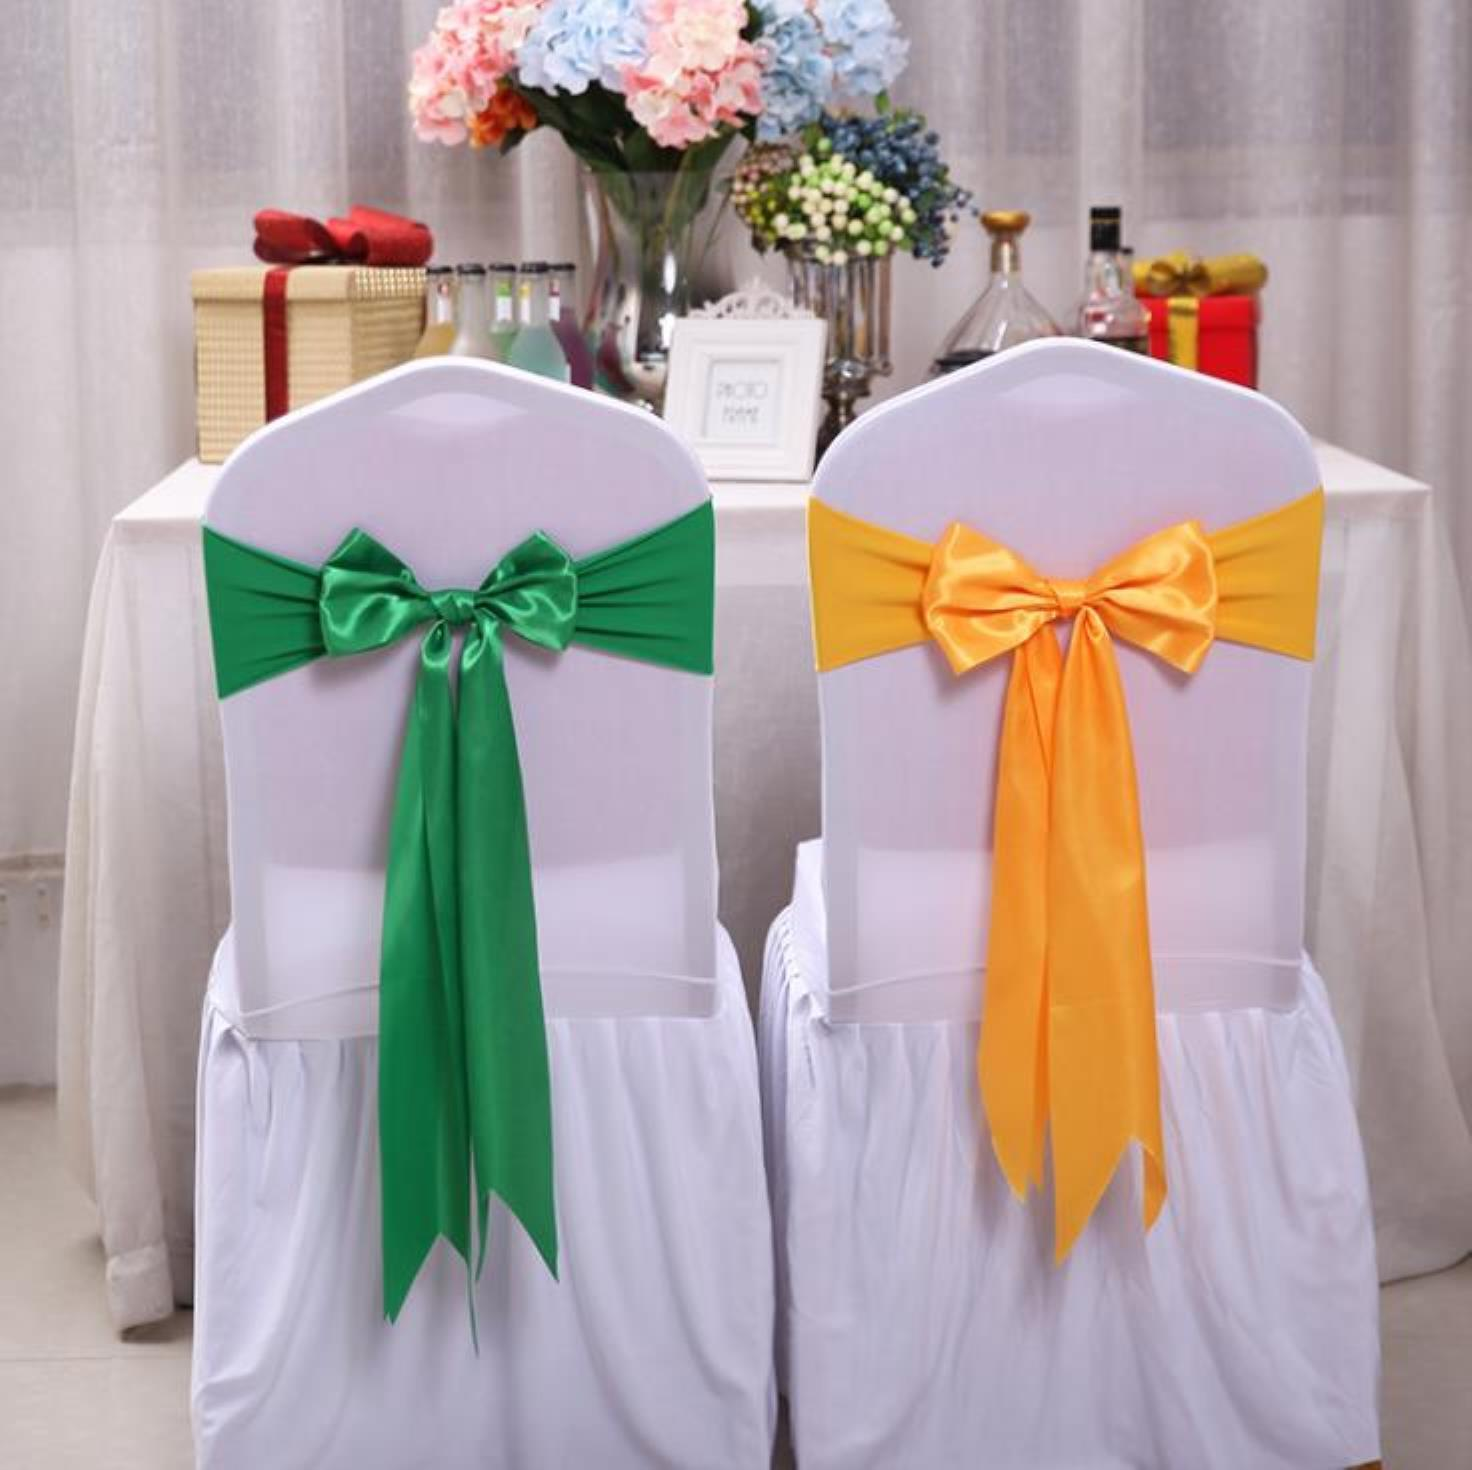 25pcs Wedding Decoration Knot Chair Bow Sashes Satin Spandex Chair Cover Band Ribbons Chair Tie Backs For Party Banqu jllKDK